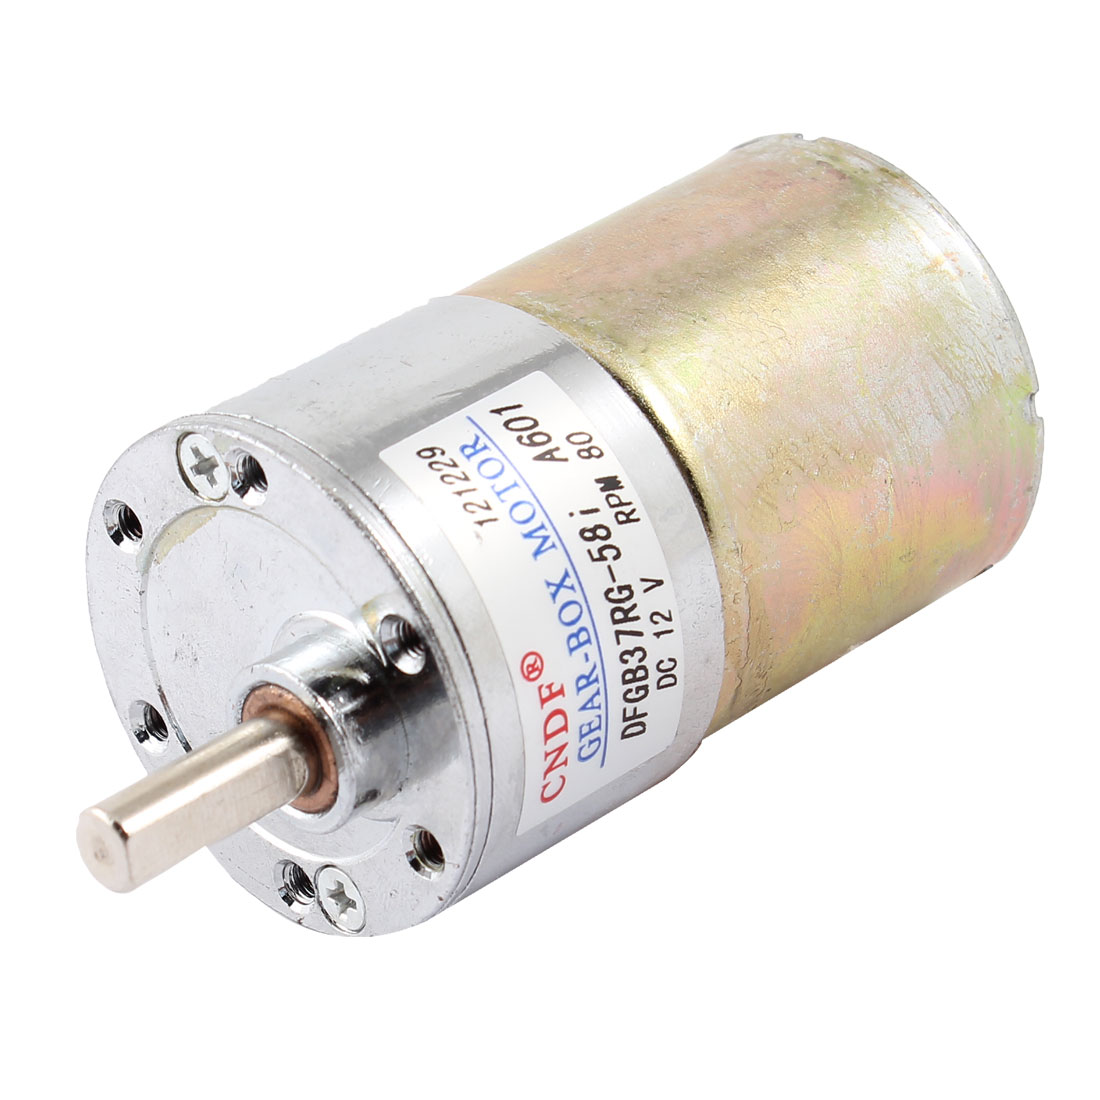 DC 12V 80RPM 6mm Dia Shaft Magnetic Electric Gear Box Motor Replacement